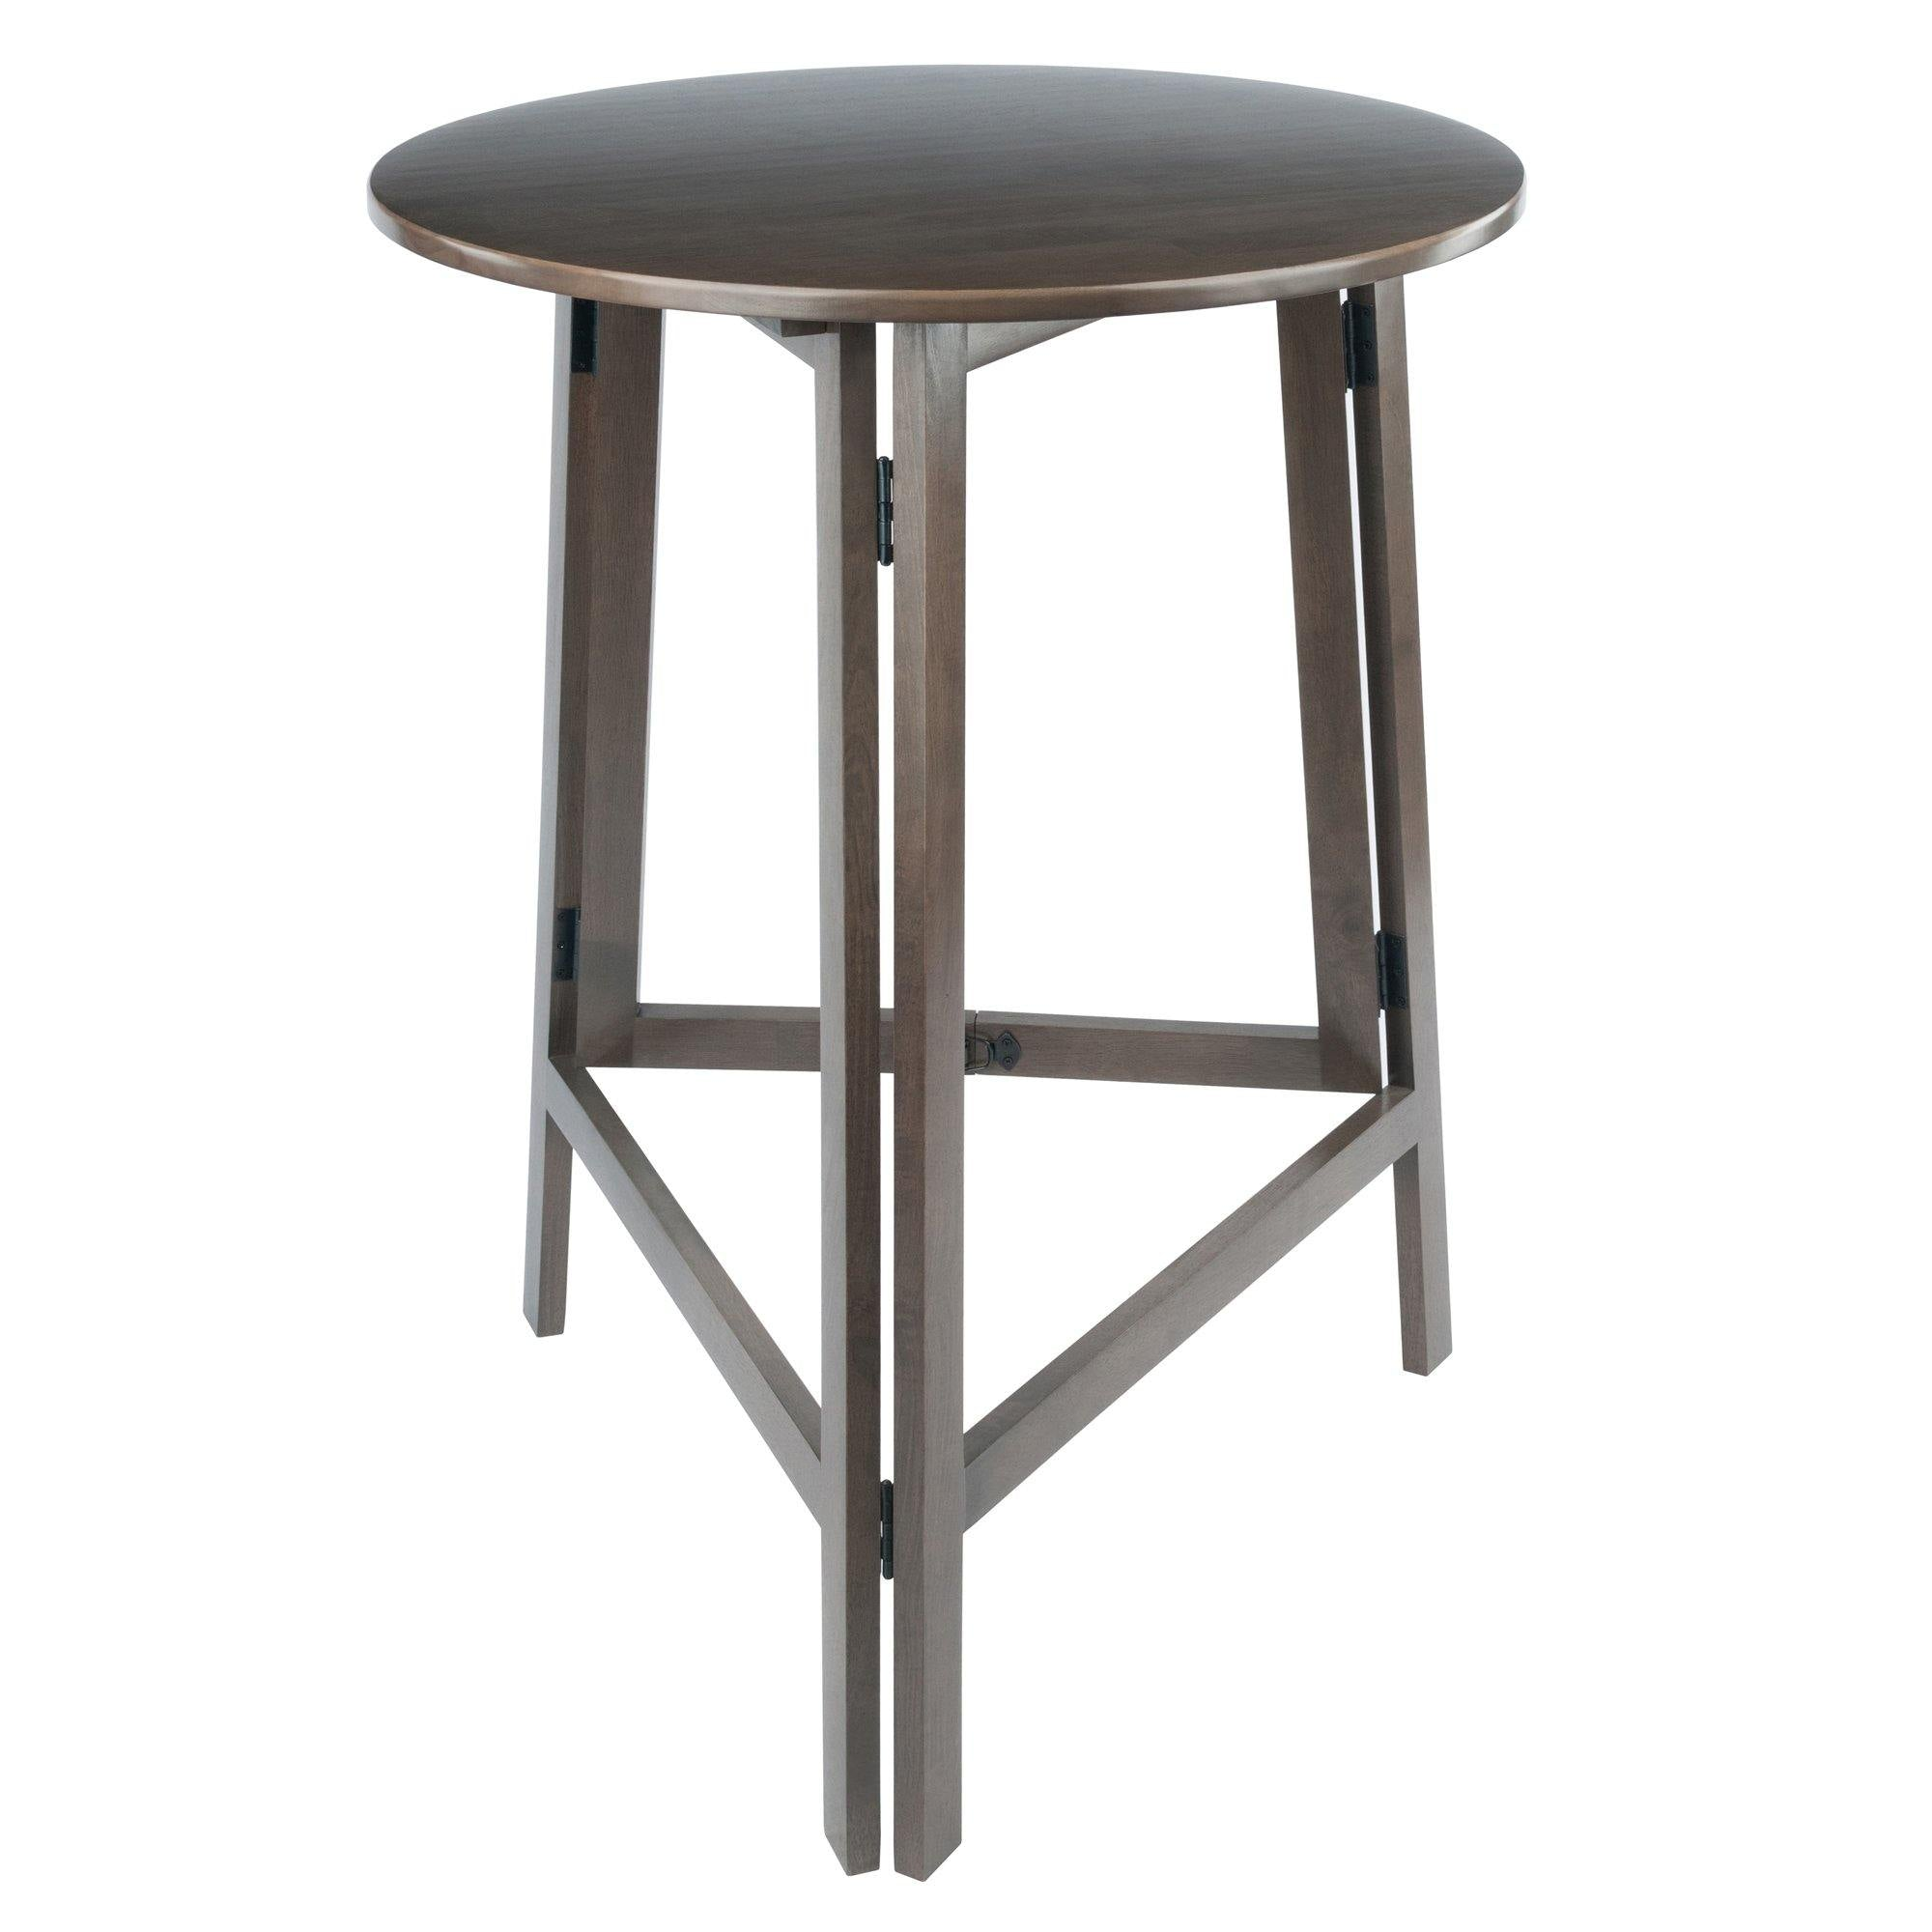 Torrence High Round Table, Oyster Gray - My USA Furniture